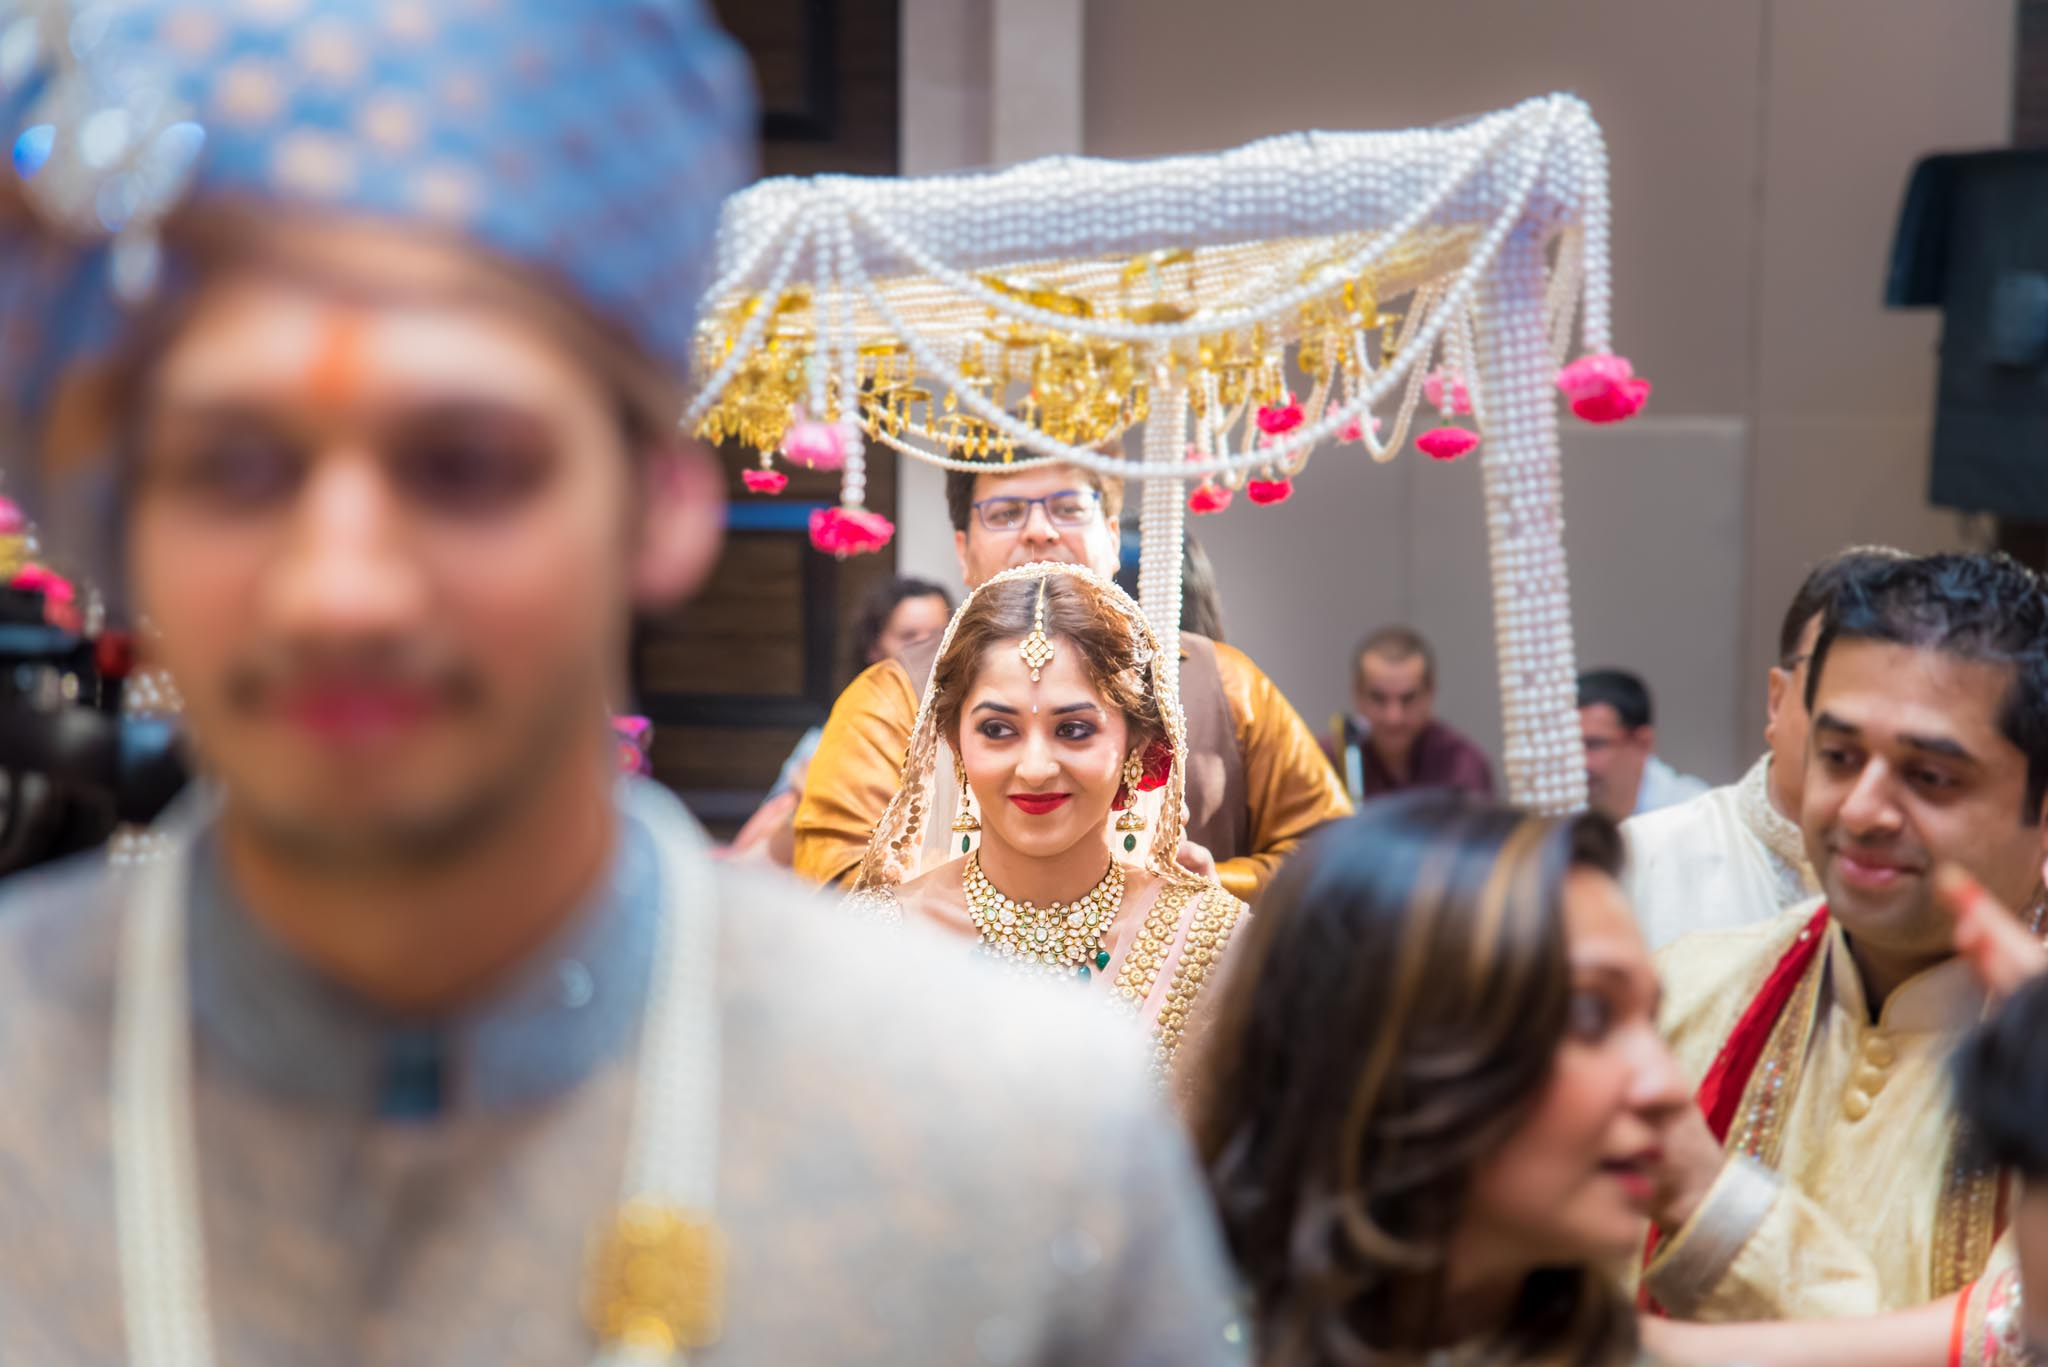 StRegis-Palladium-Mumbai-Candid-Wedding-Photography-31